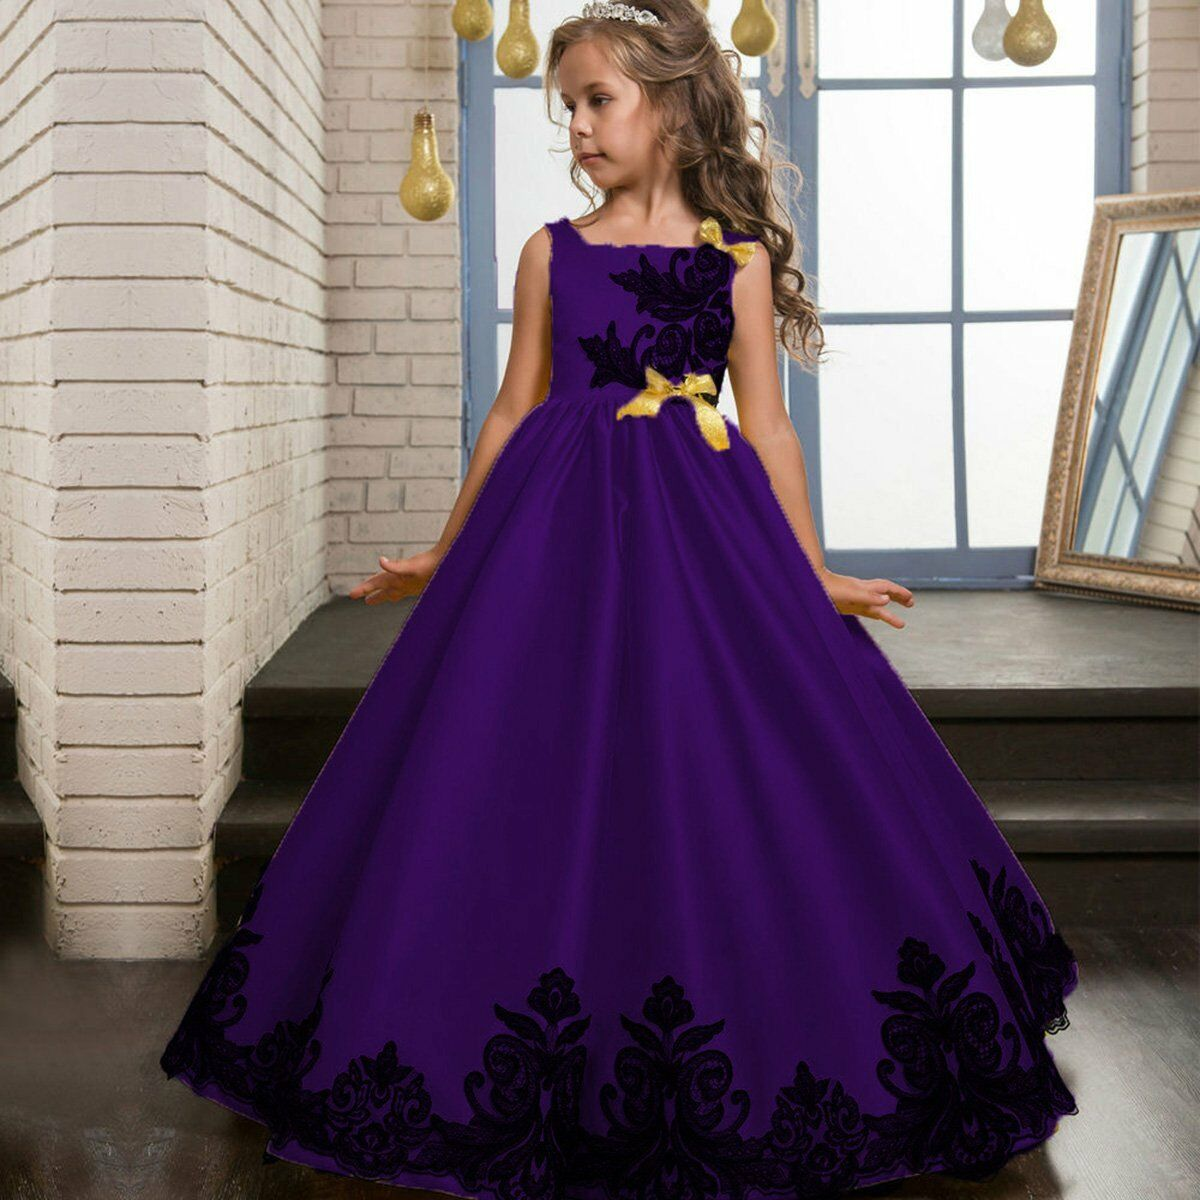 Dama De Honor Vestido Princesa Niño Boda Paje Fiesta Formal gowntutu ...